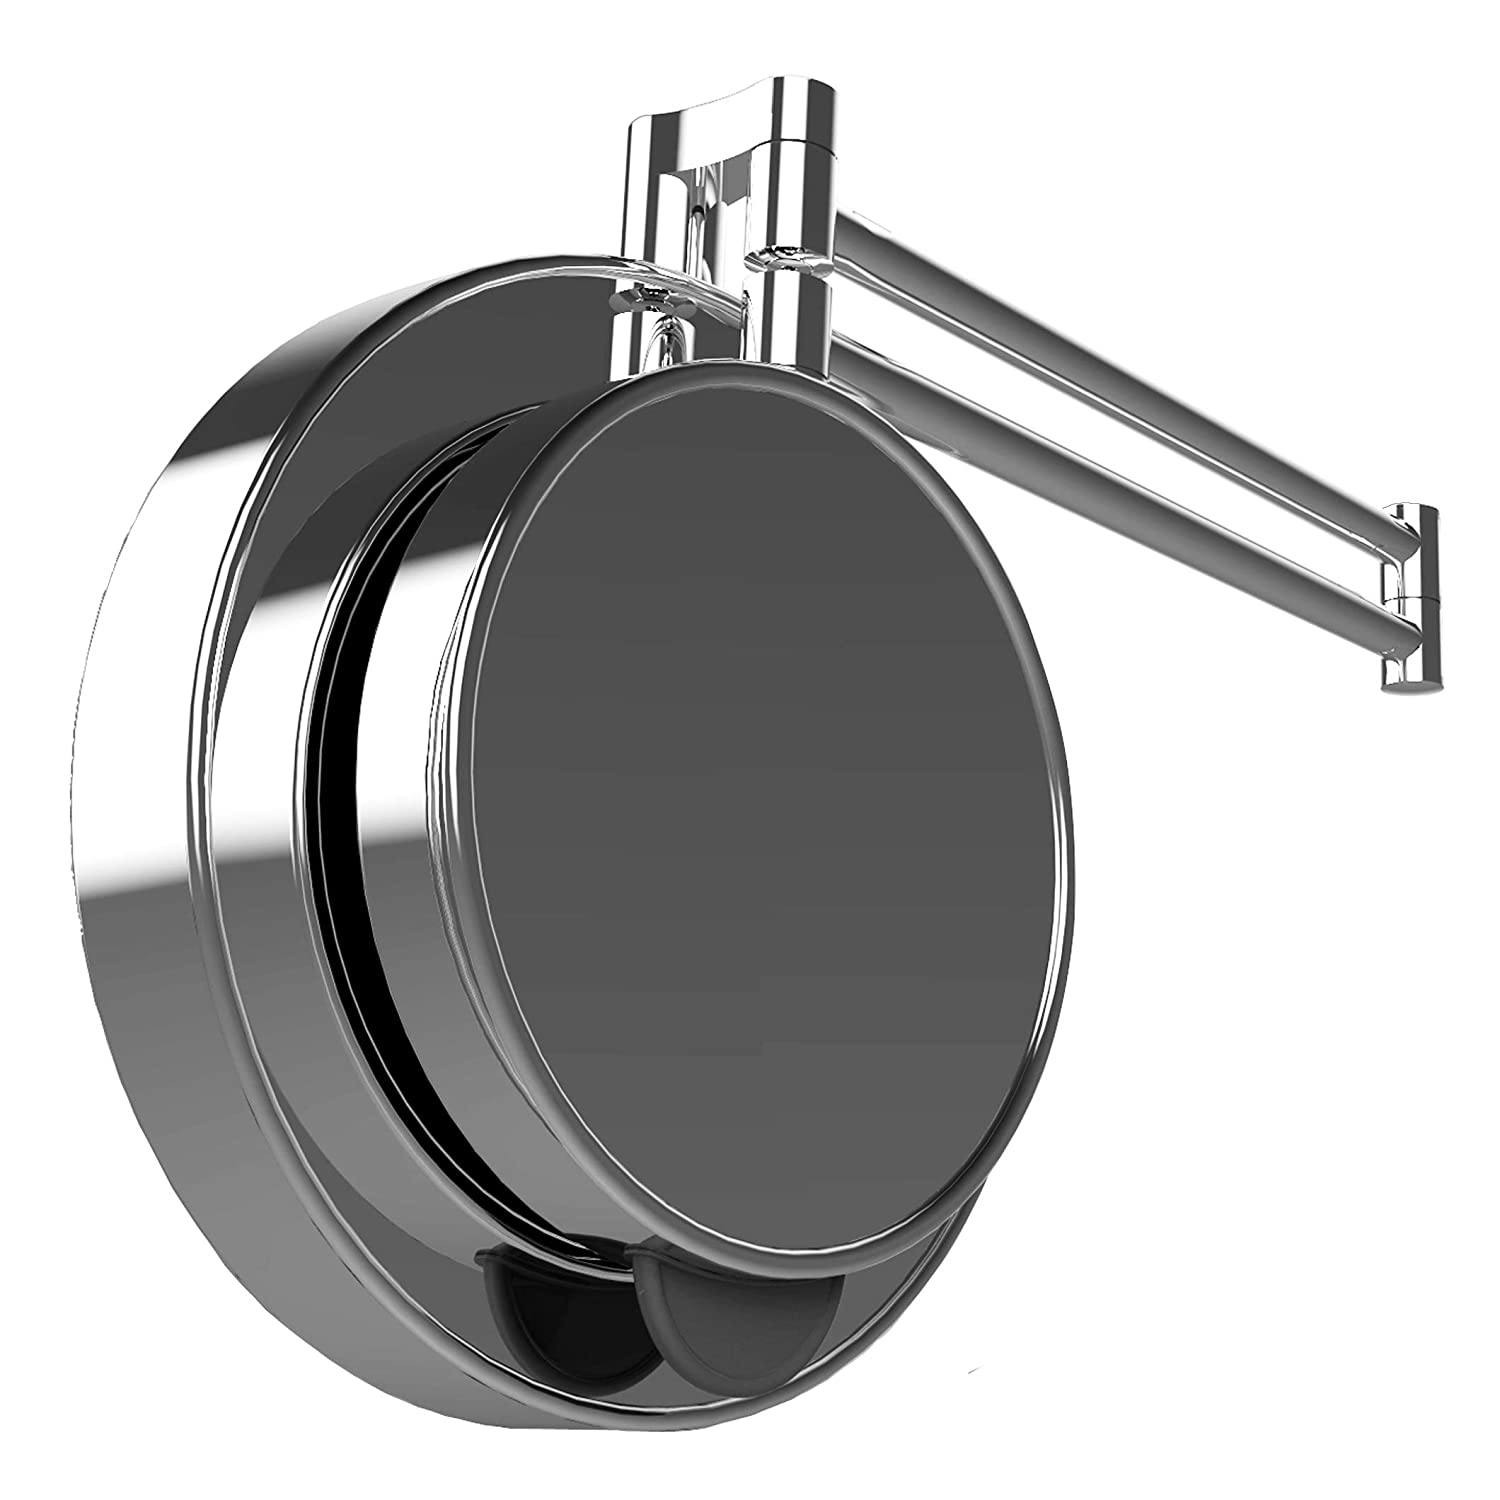 360 Degree Mirror By Synergy Products